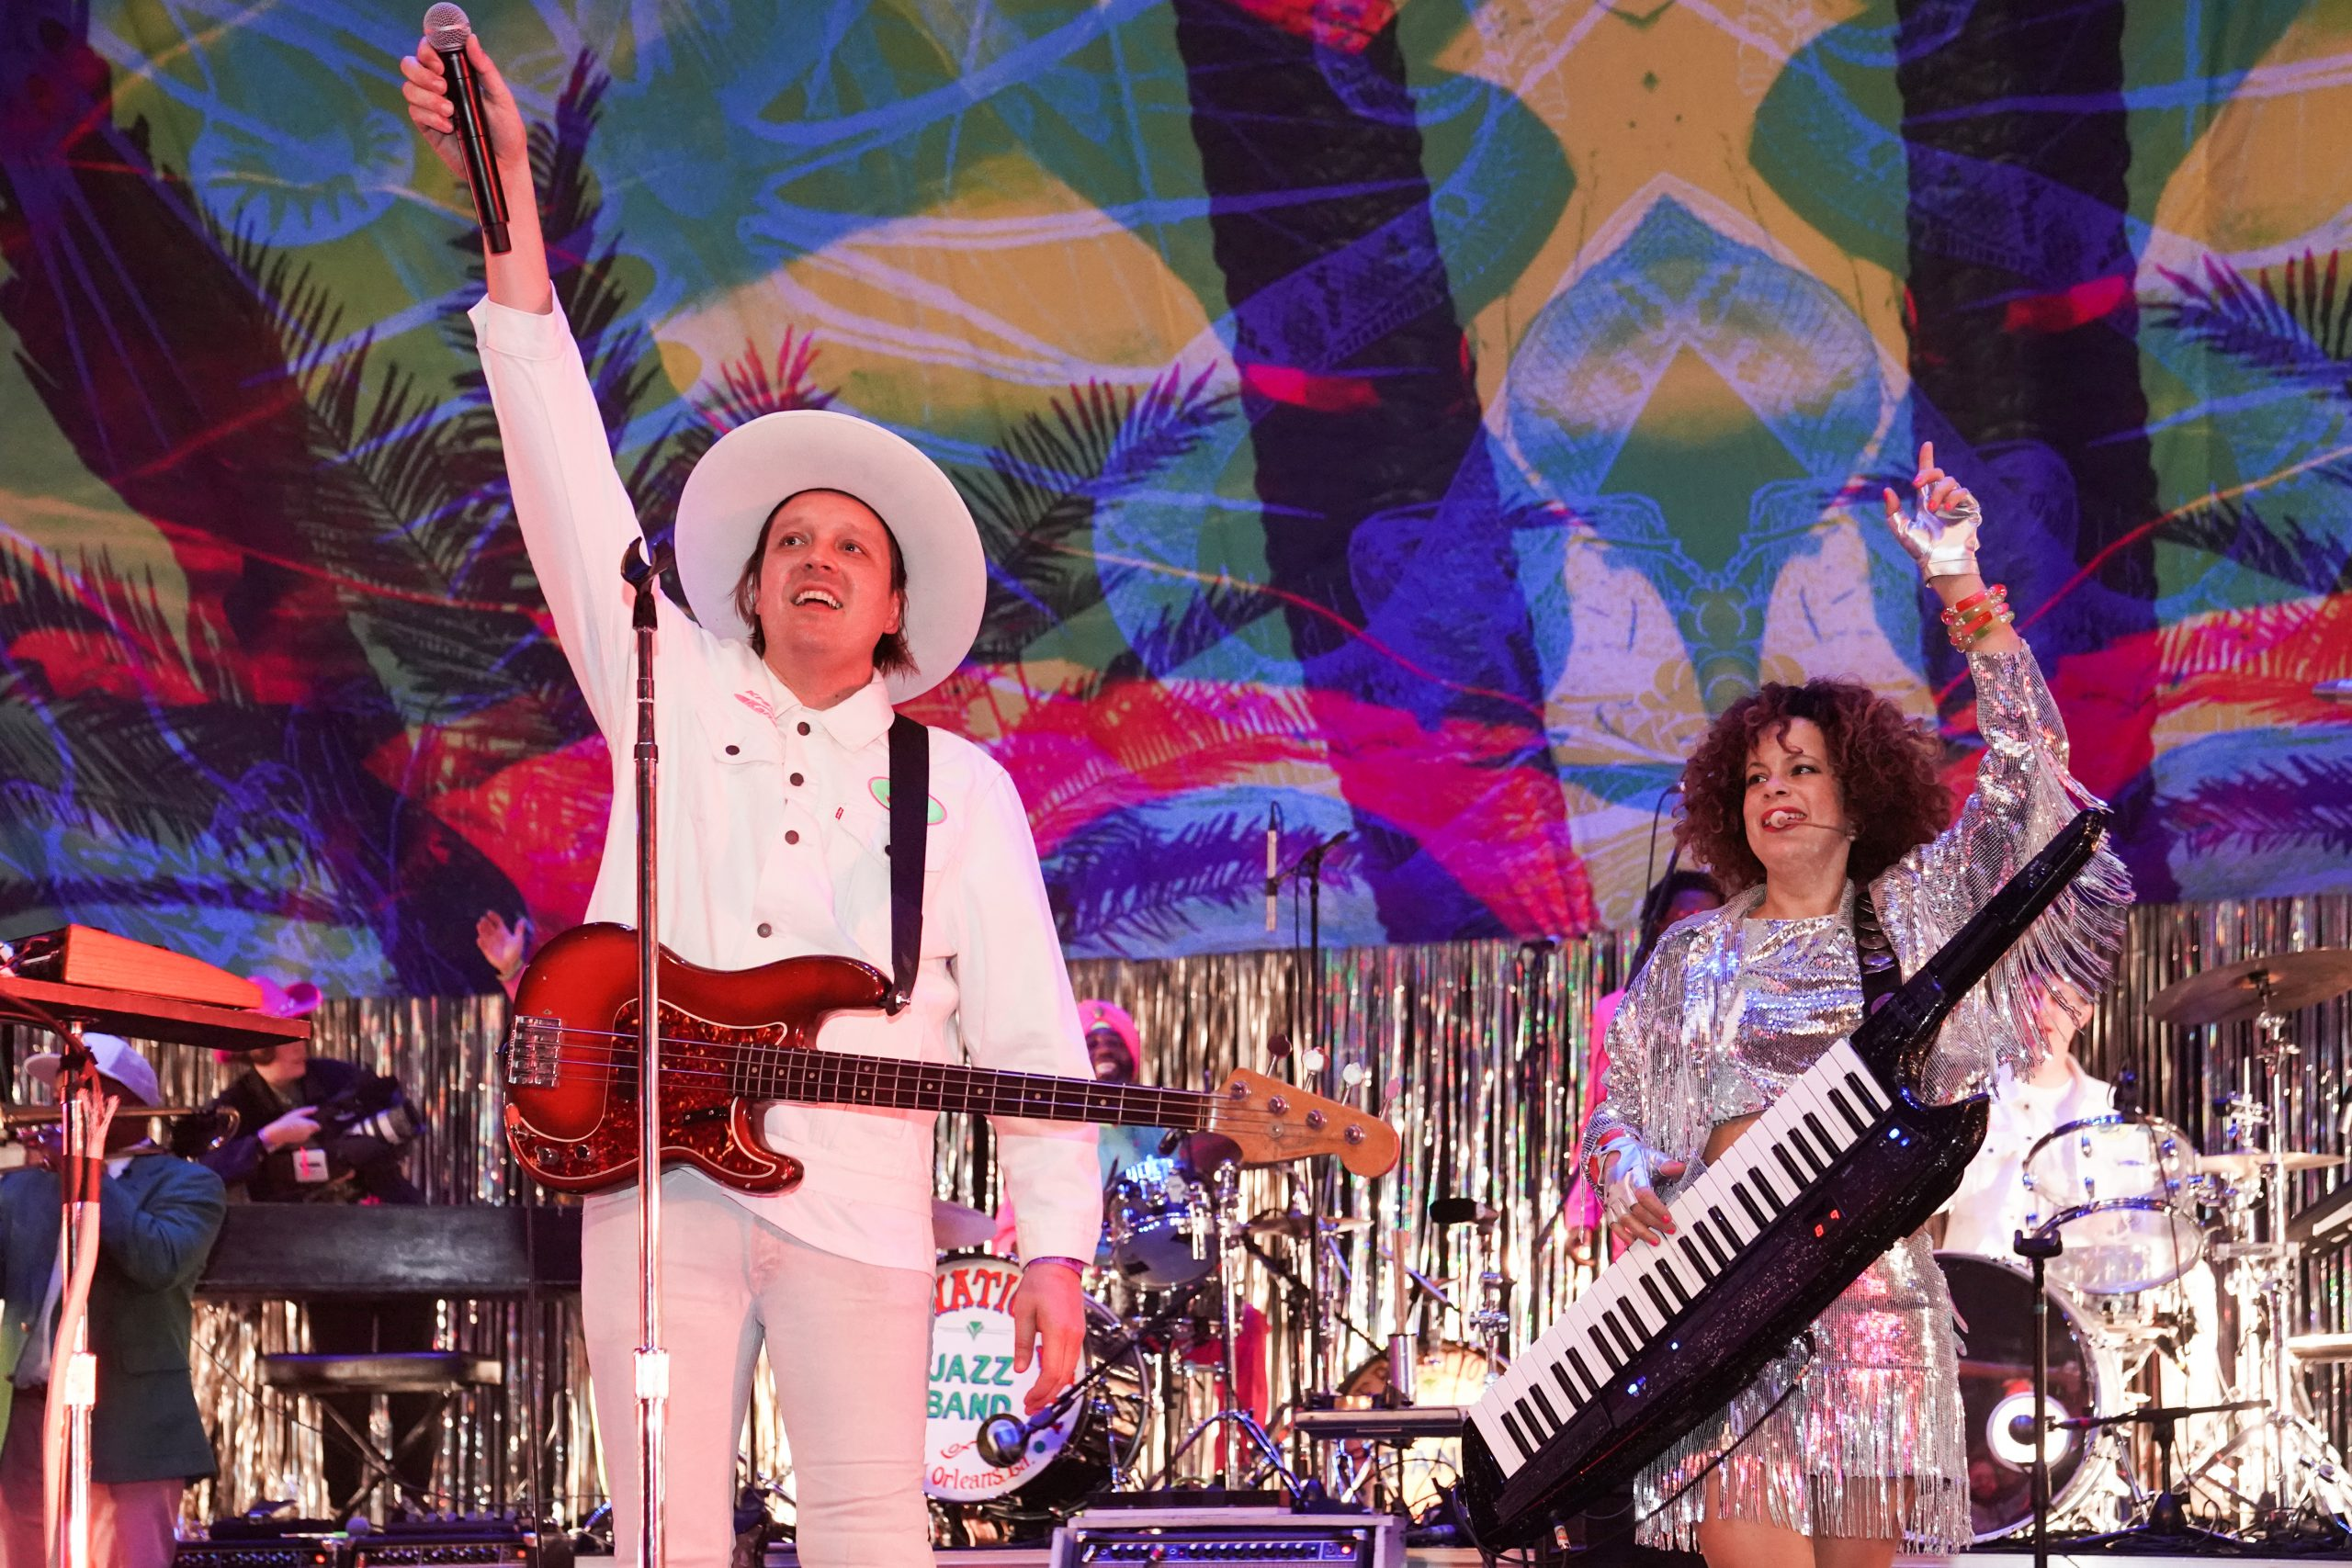 win-butler-regine-chassagne-arcade-fire